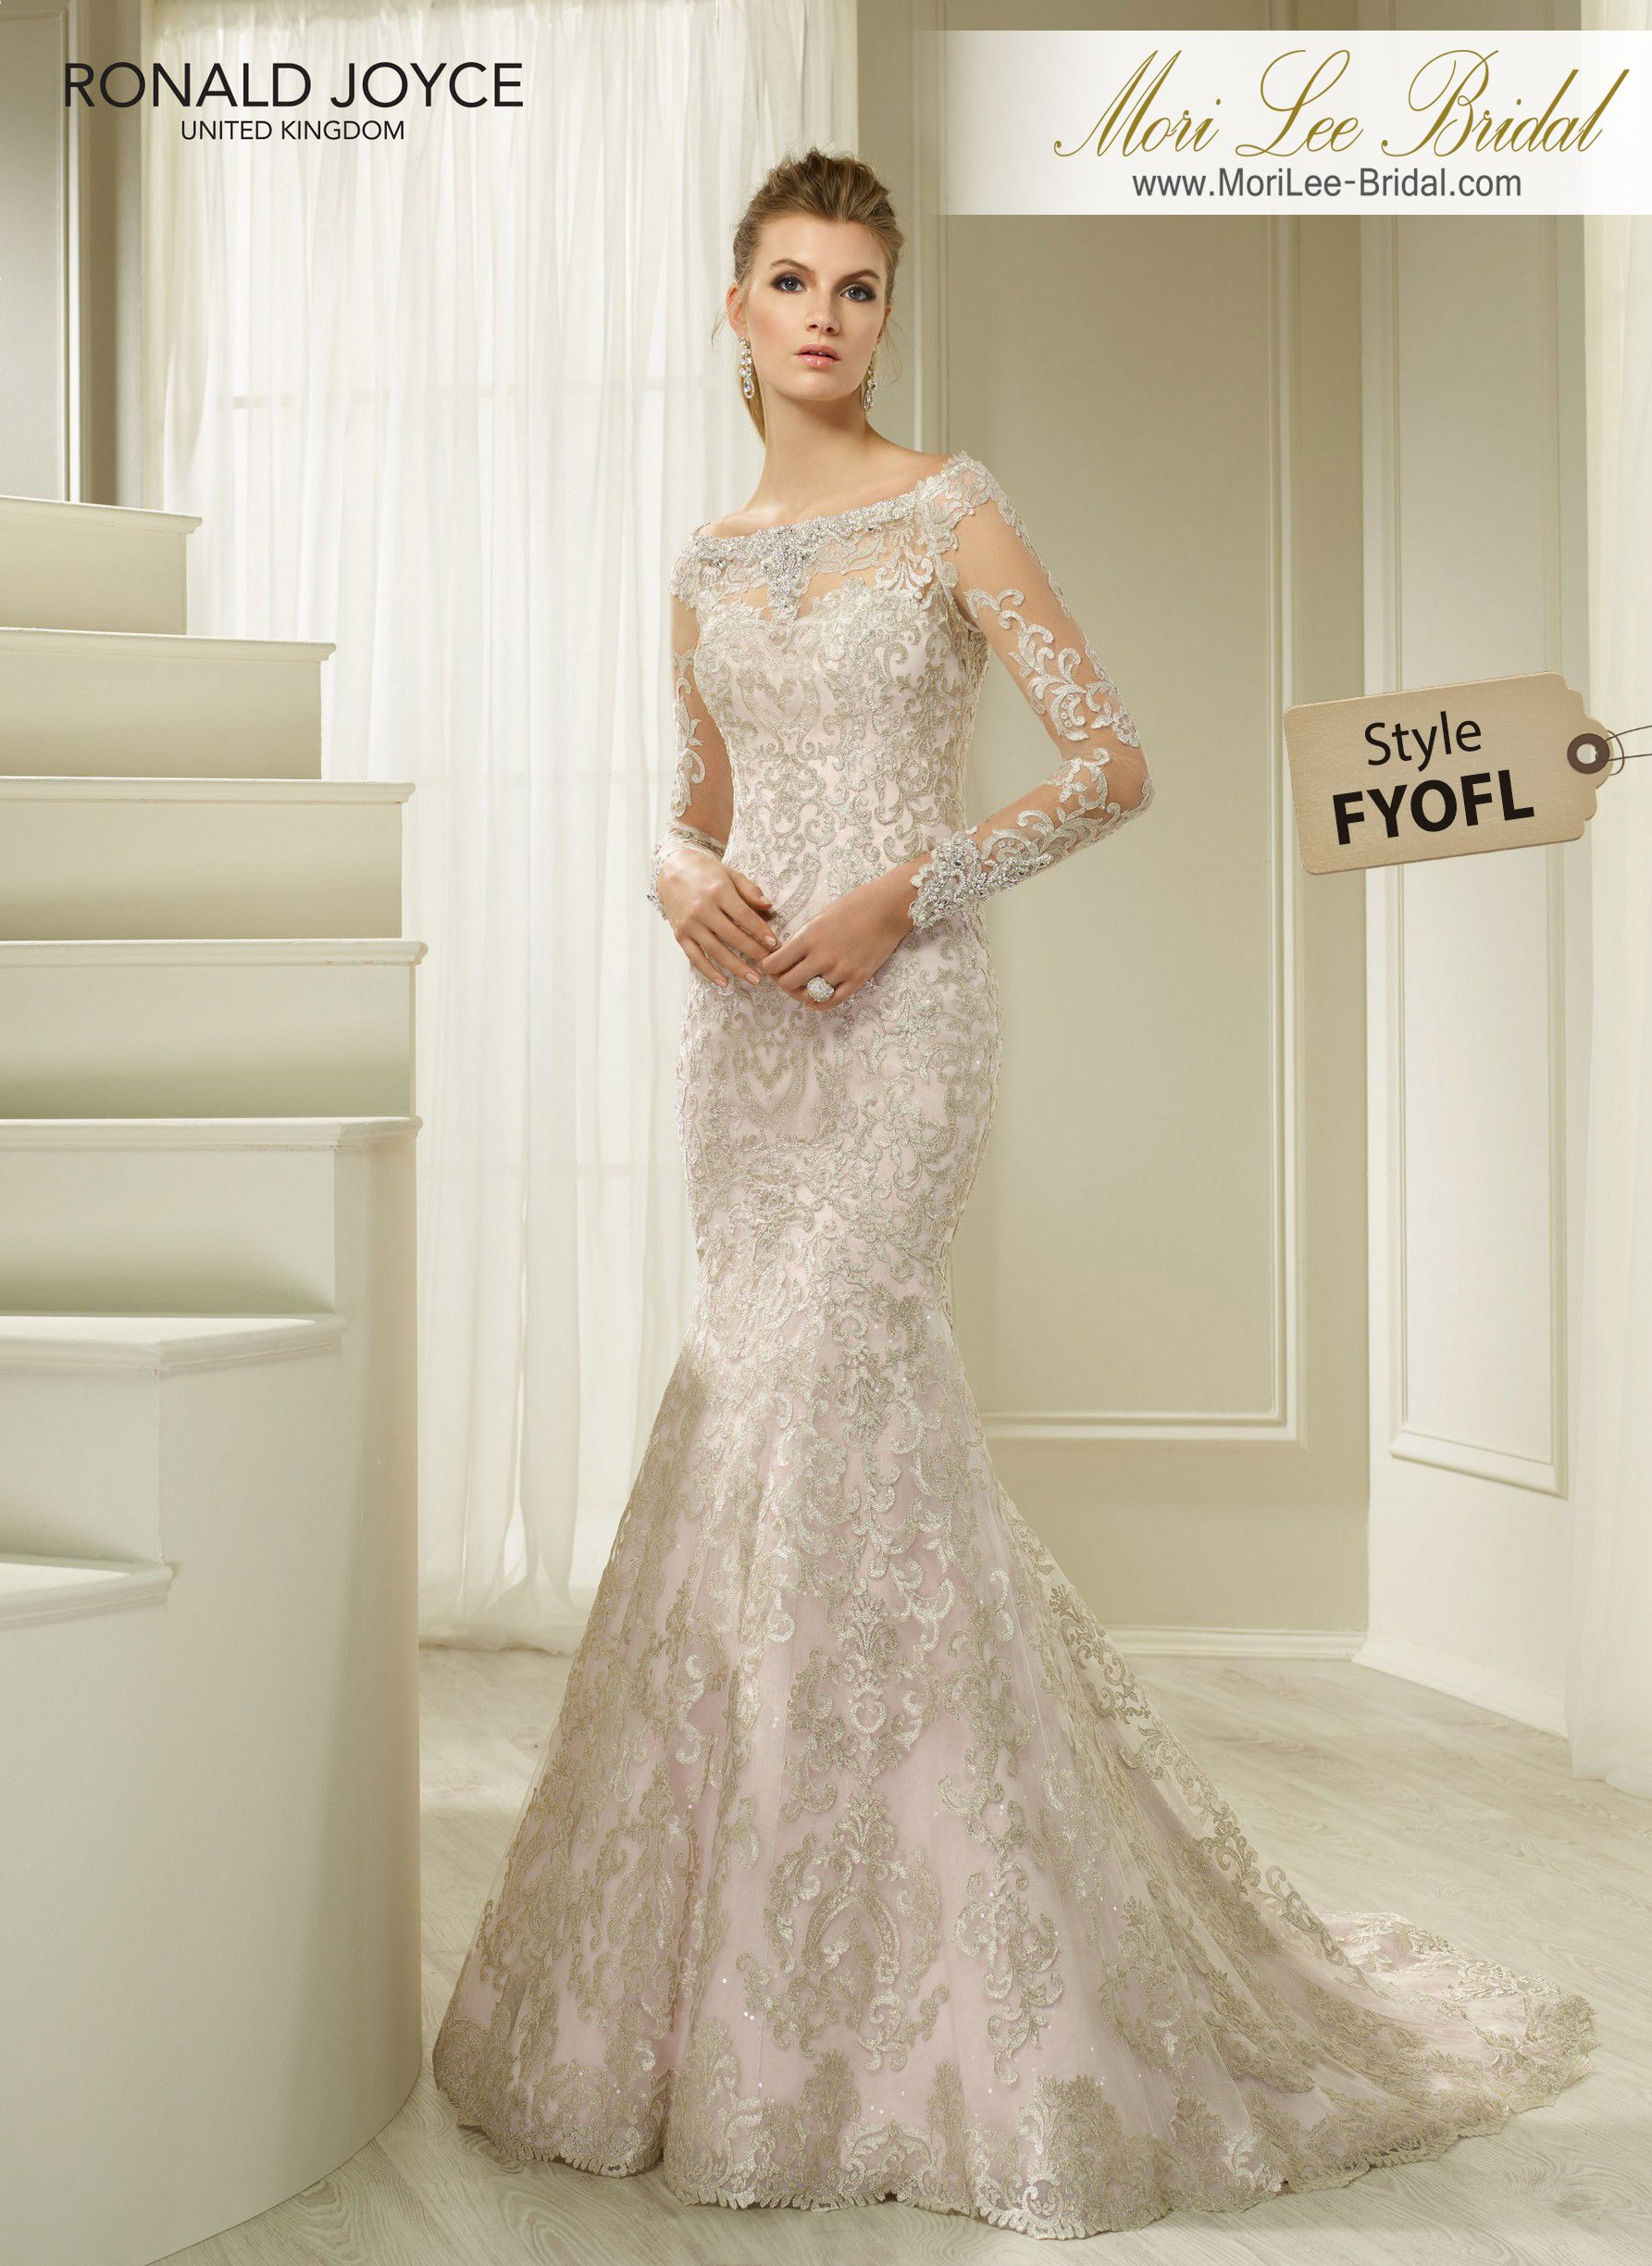 Style fyofl harbor a satin and tulle fishtail gown with allover